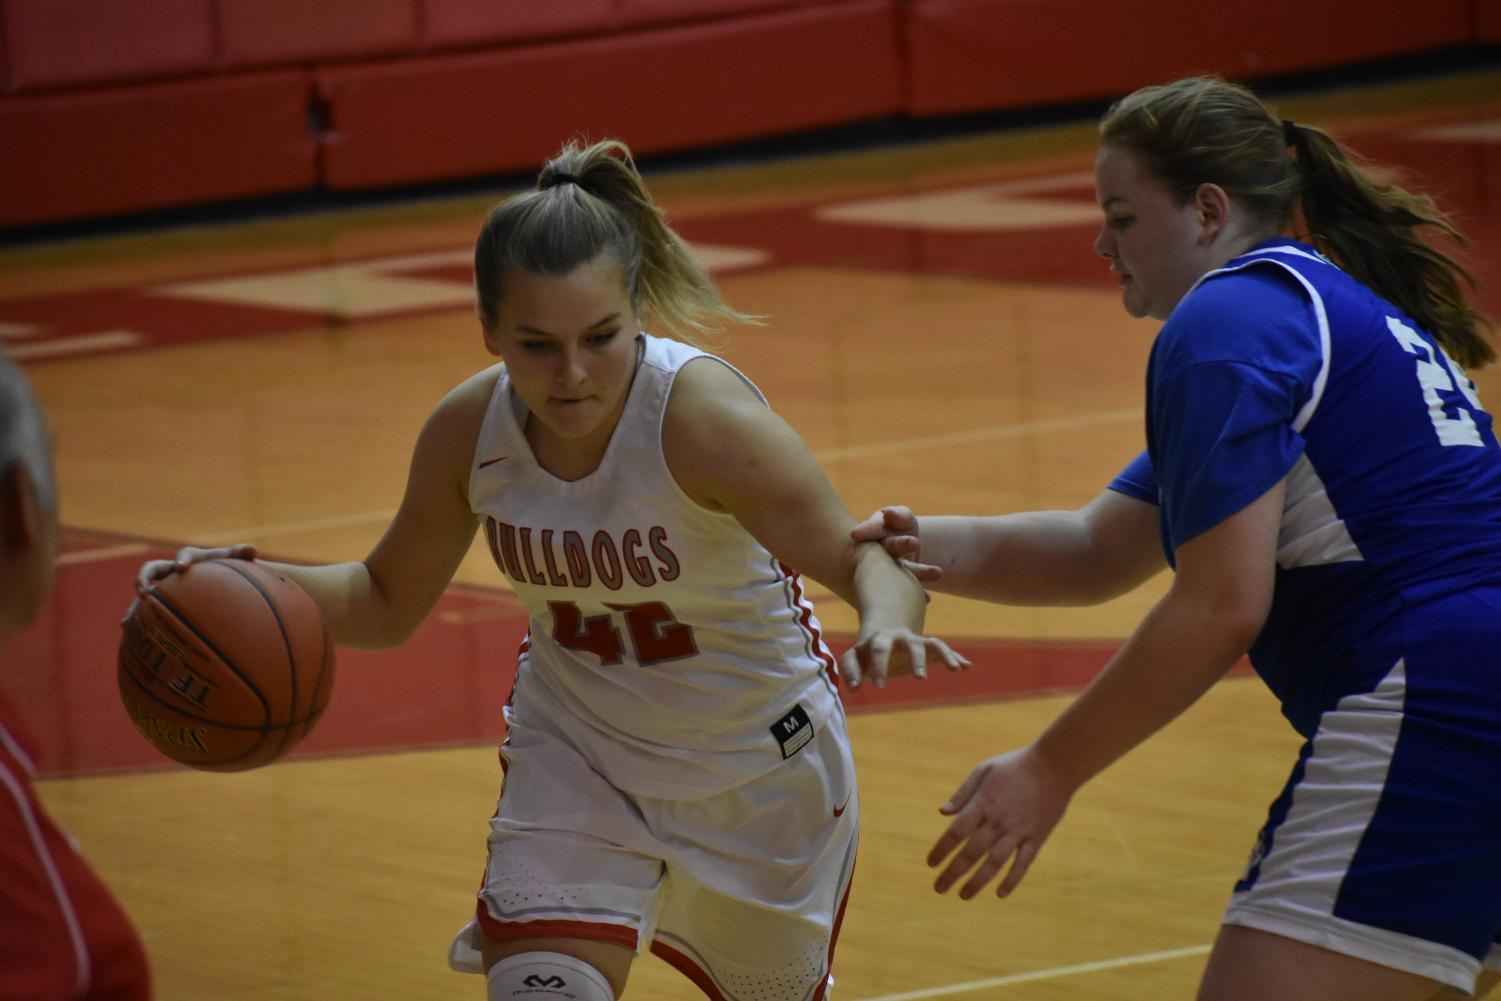 Sophomore Cadence Gorajewski dribbles the ball up the court in an attempt to score during a game against Ellwood.